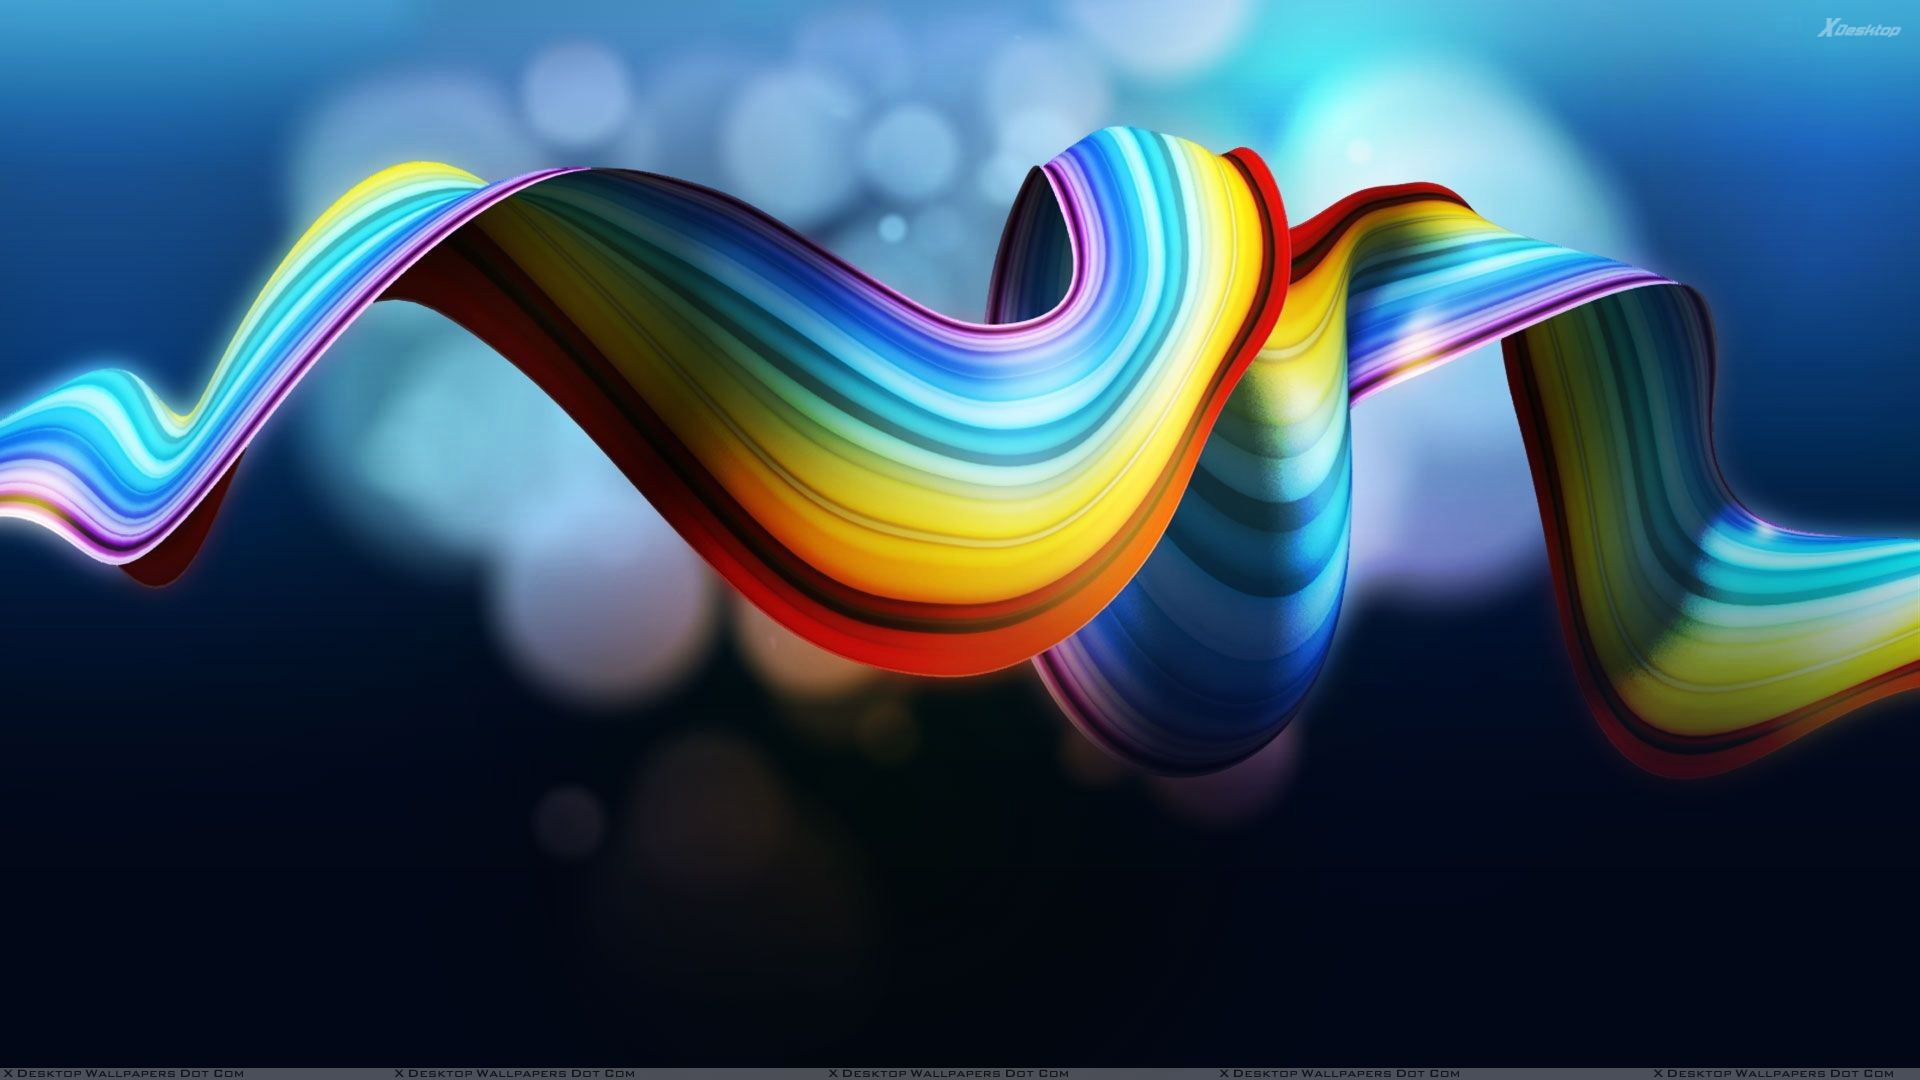 Cool Rainbow Abstract Download 23